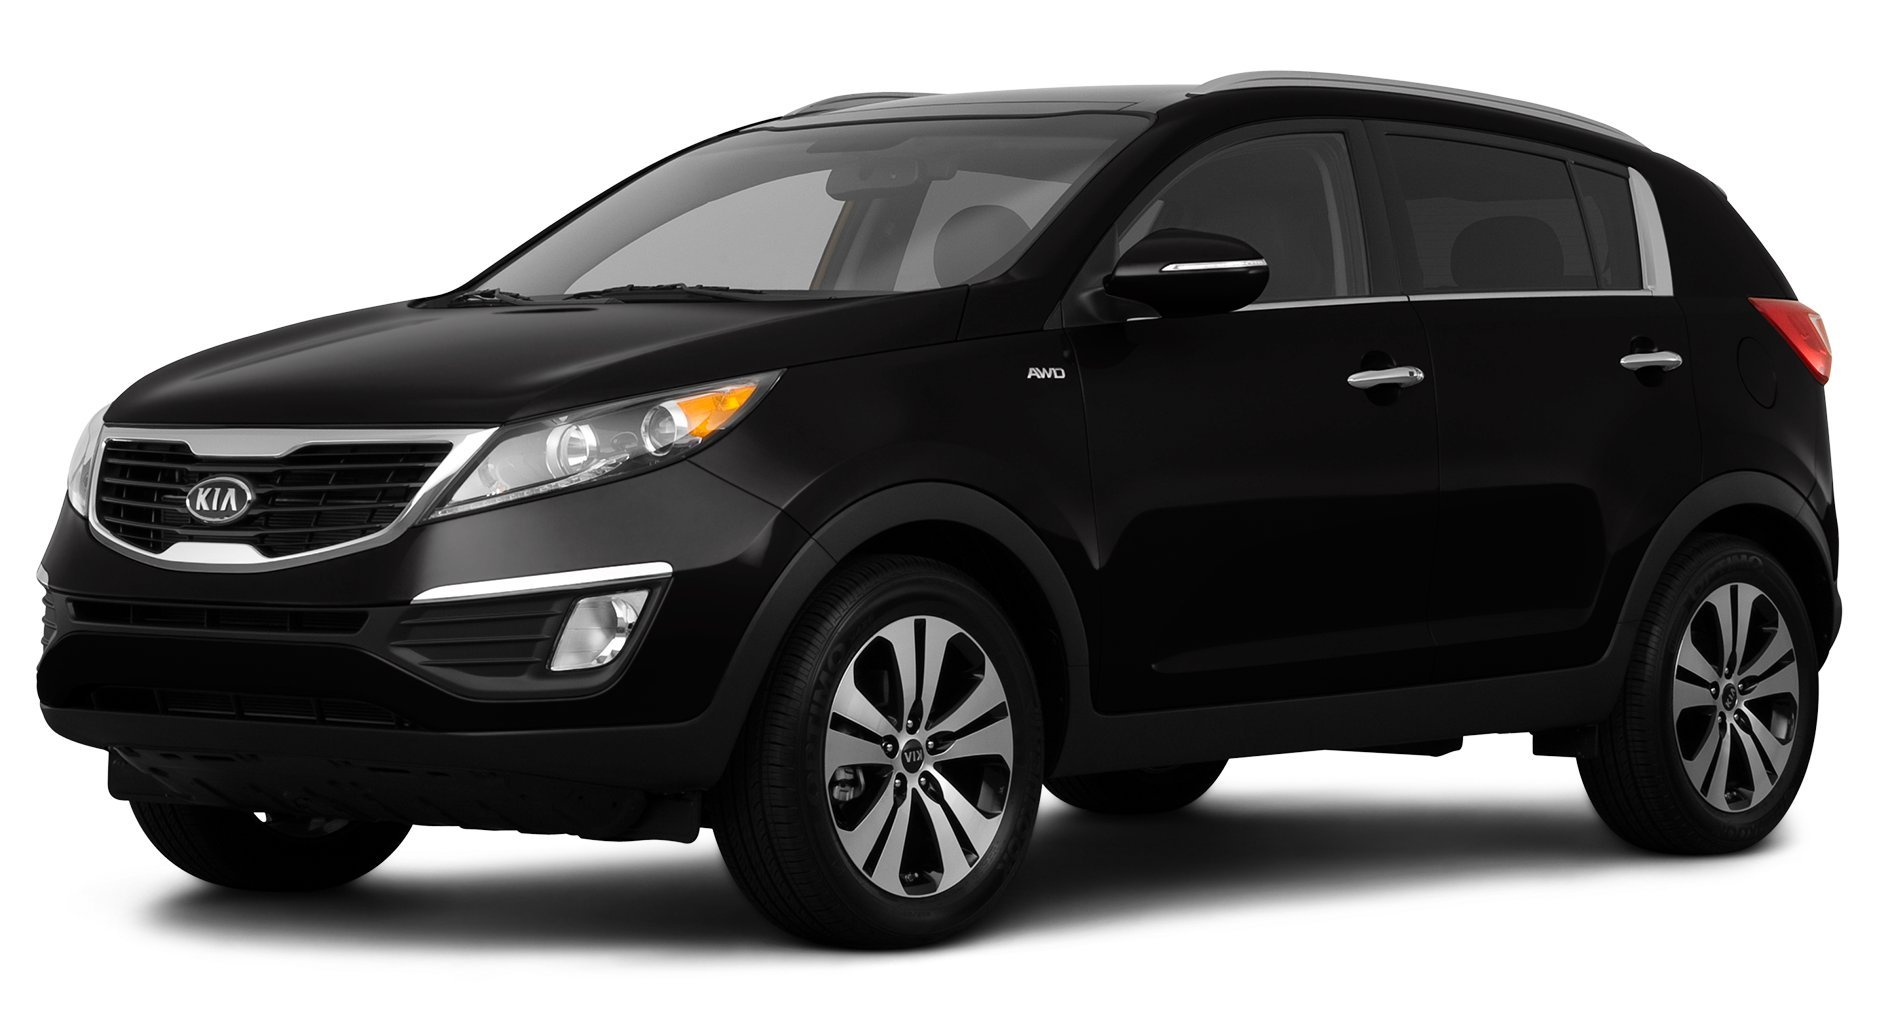 2011 chevrolet equinox reviews images and specs vehicles. Black Bedroom Furniture Sets. Home Design Ideas